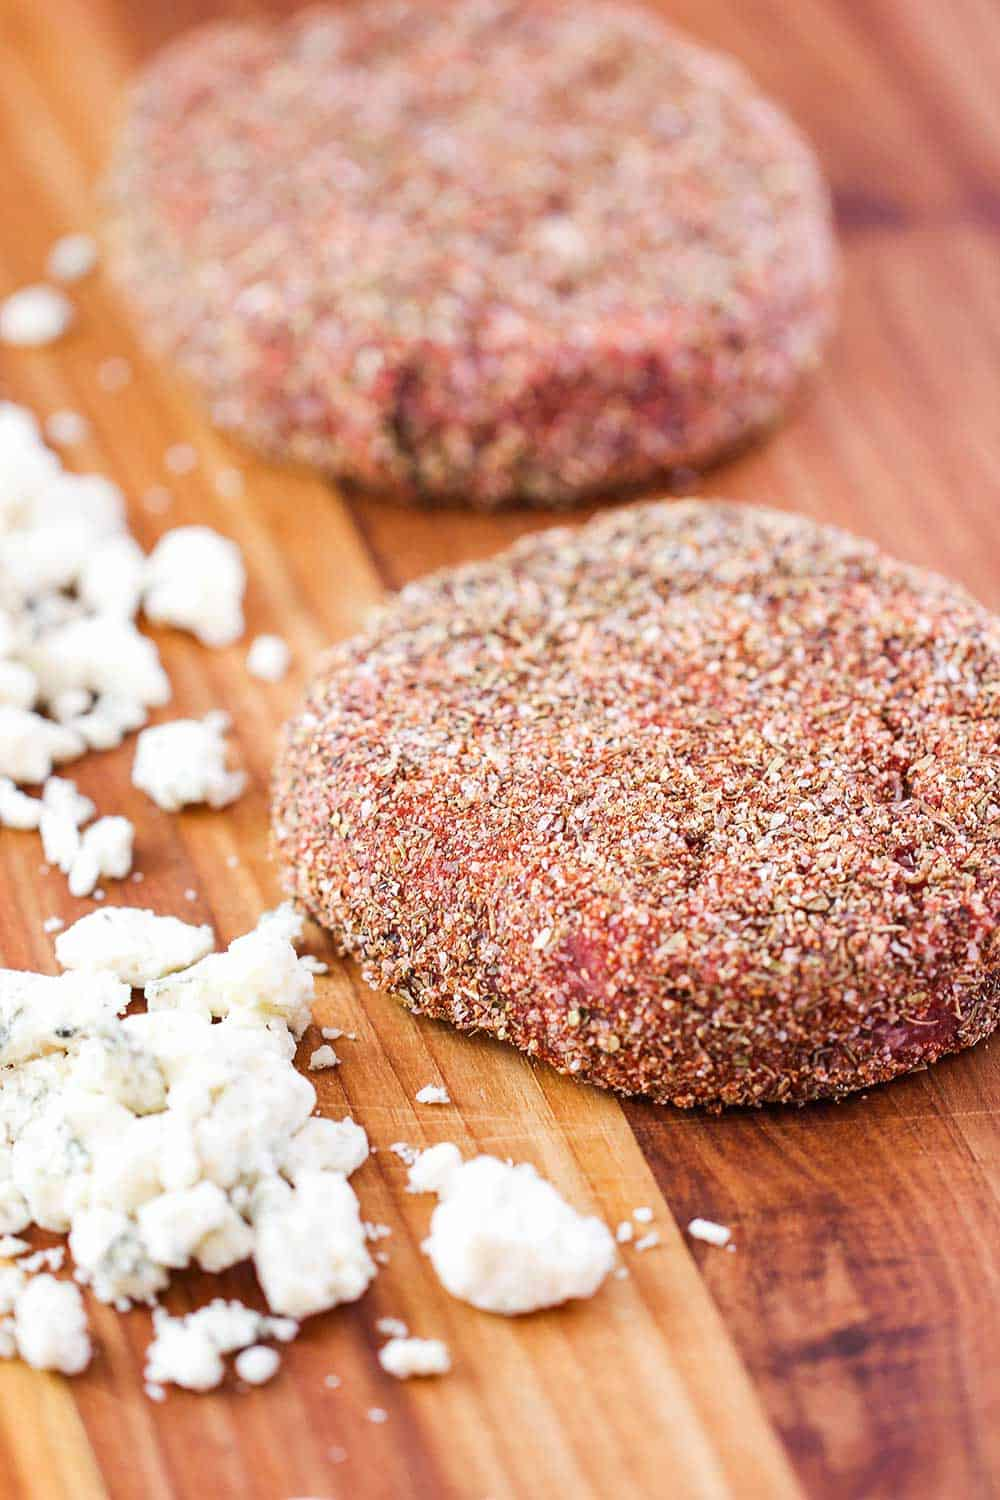 Uncooked sirloin burgers with blackening seasoning on them.